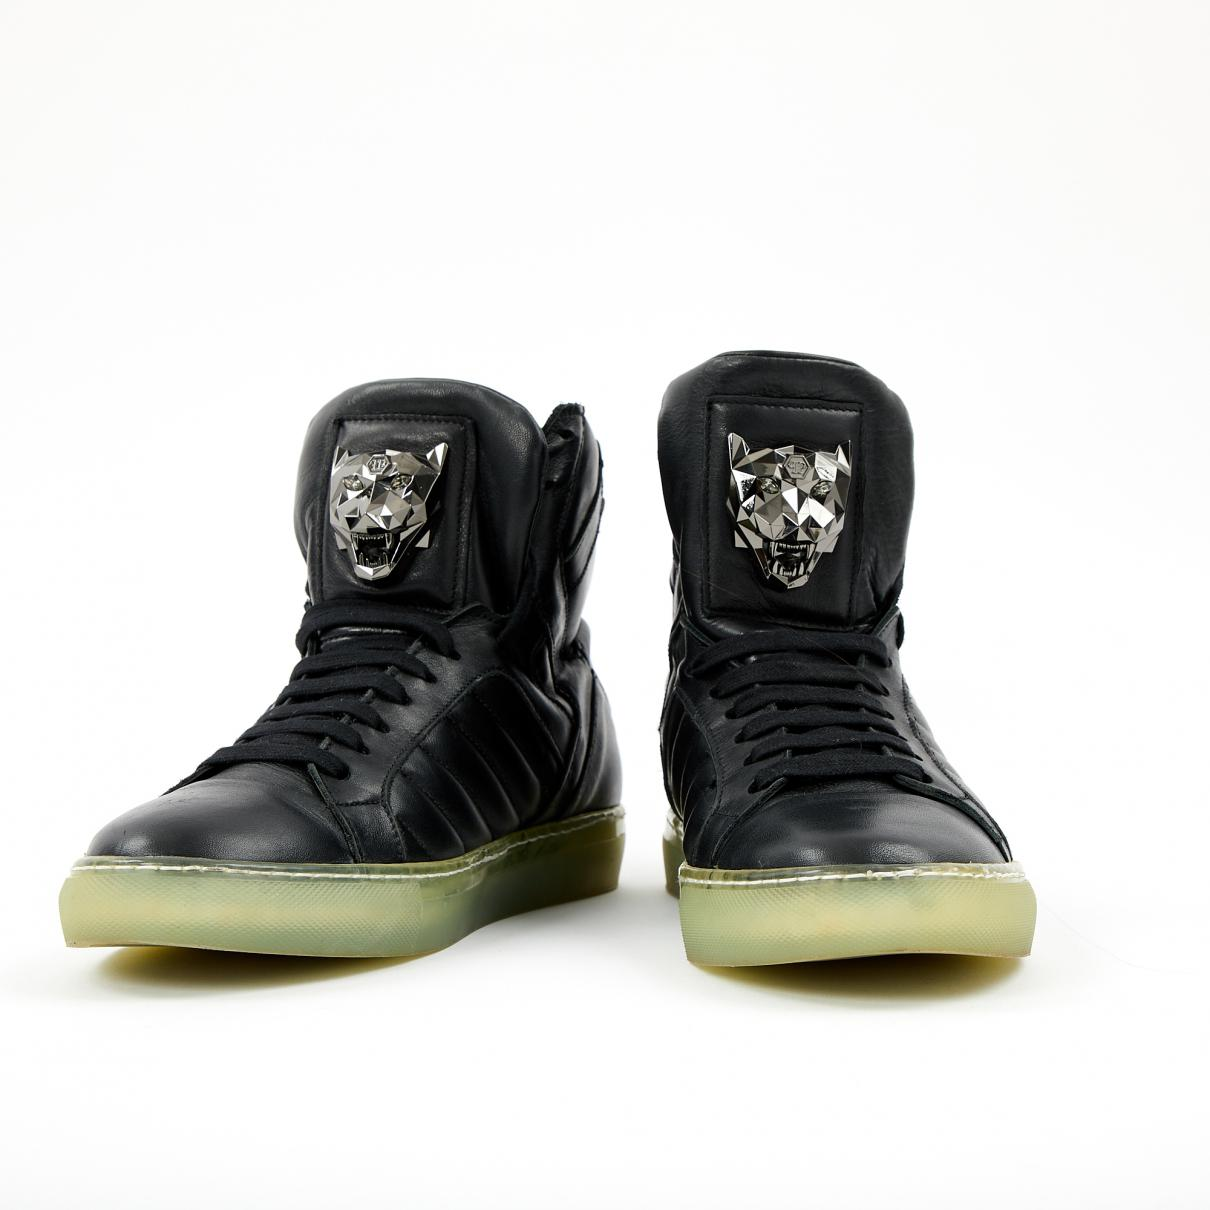 Pre-owned - Leather high trainers Philipp Plein RGgYh